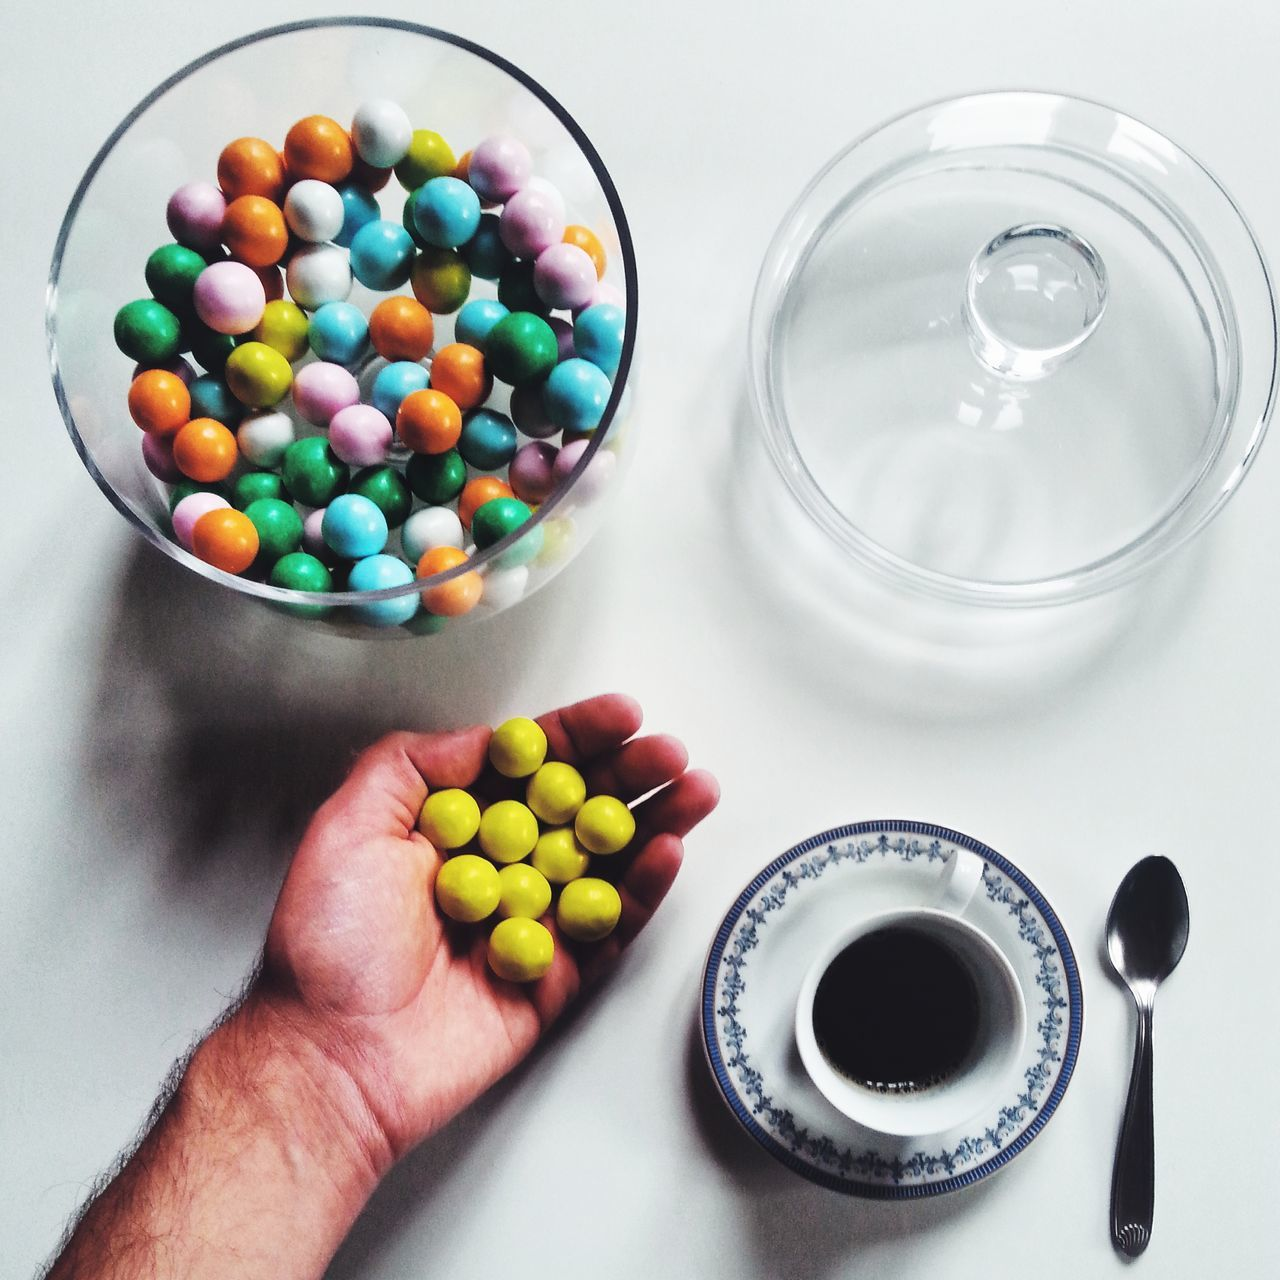 Cropped image of man with gumballs and black coffee on table at home